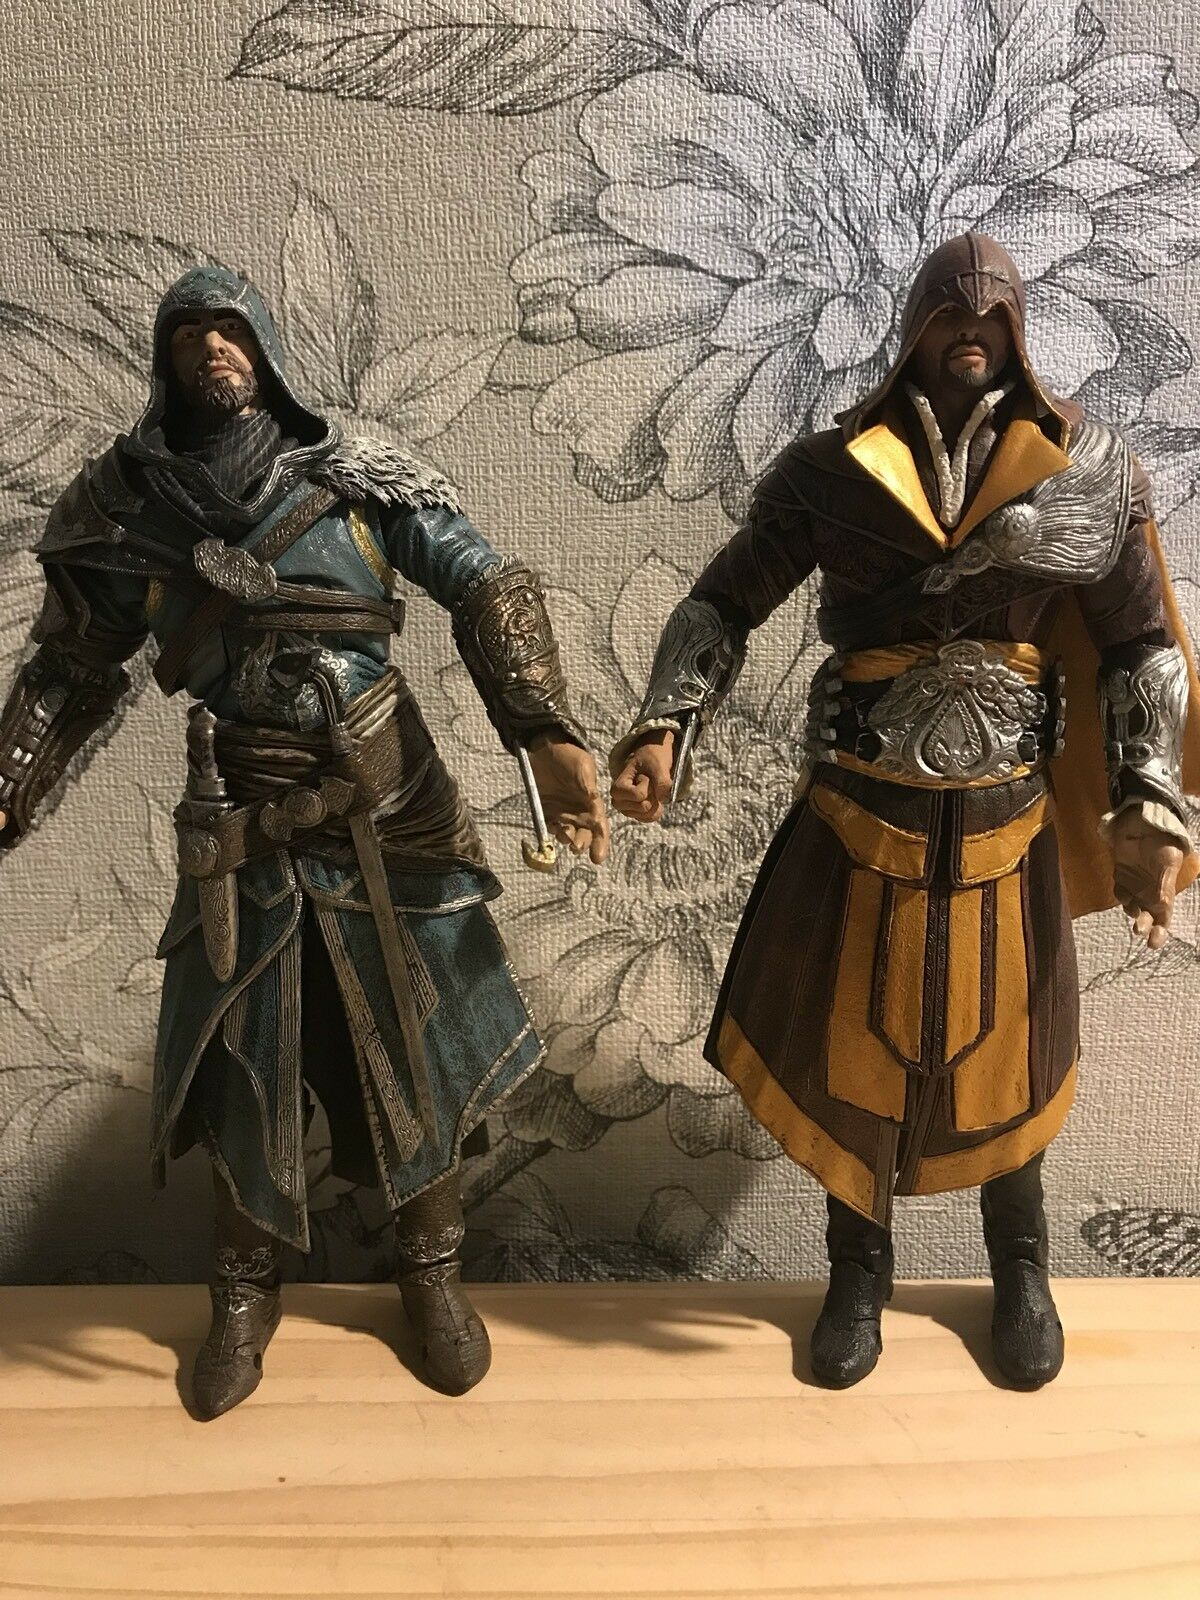 NECA Assassins Creed Revelations Auditore Action Figure Rare Toys R Us Exclusive